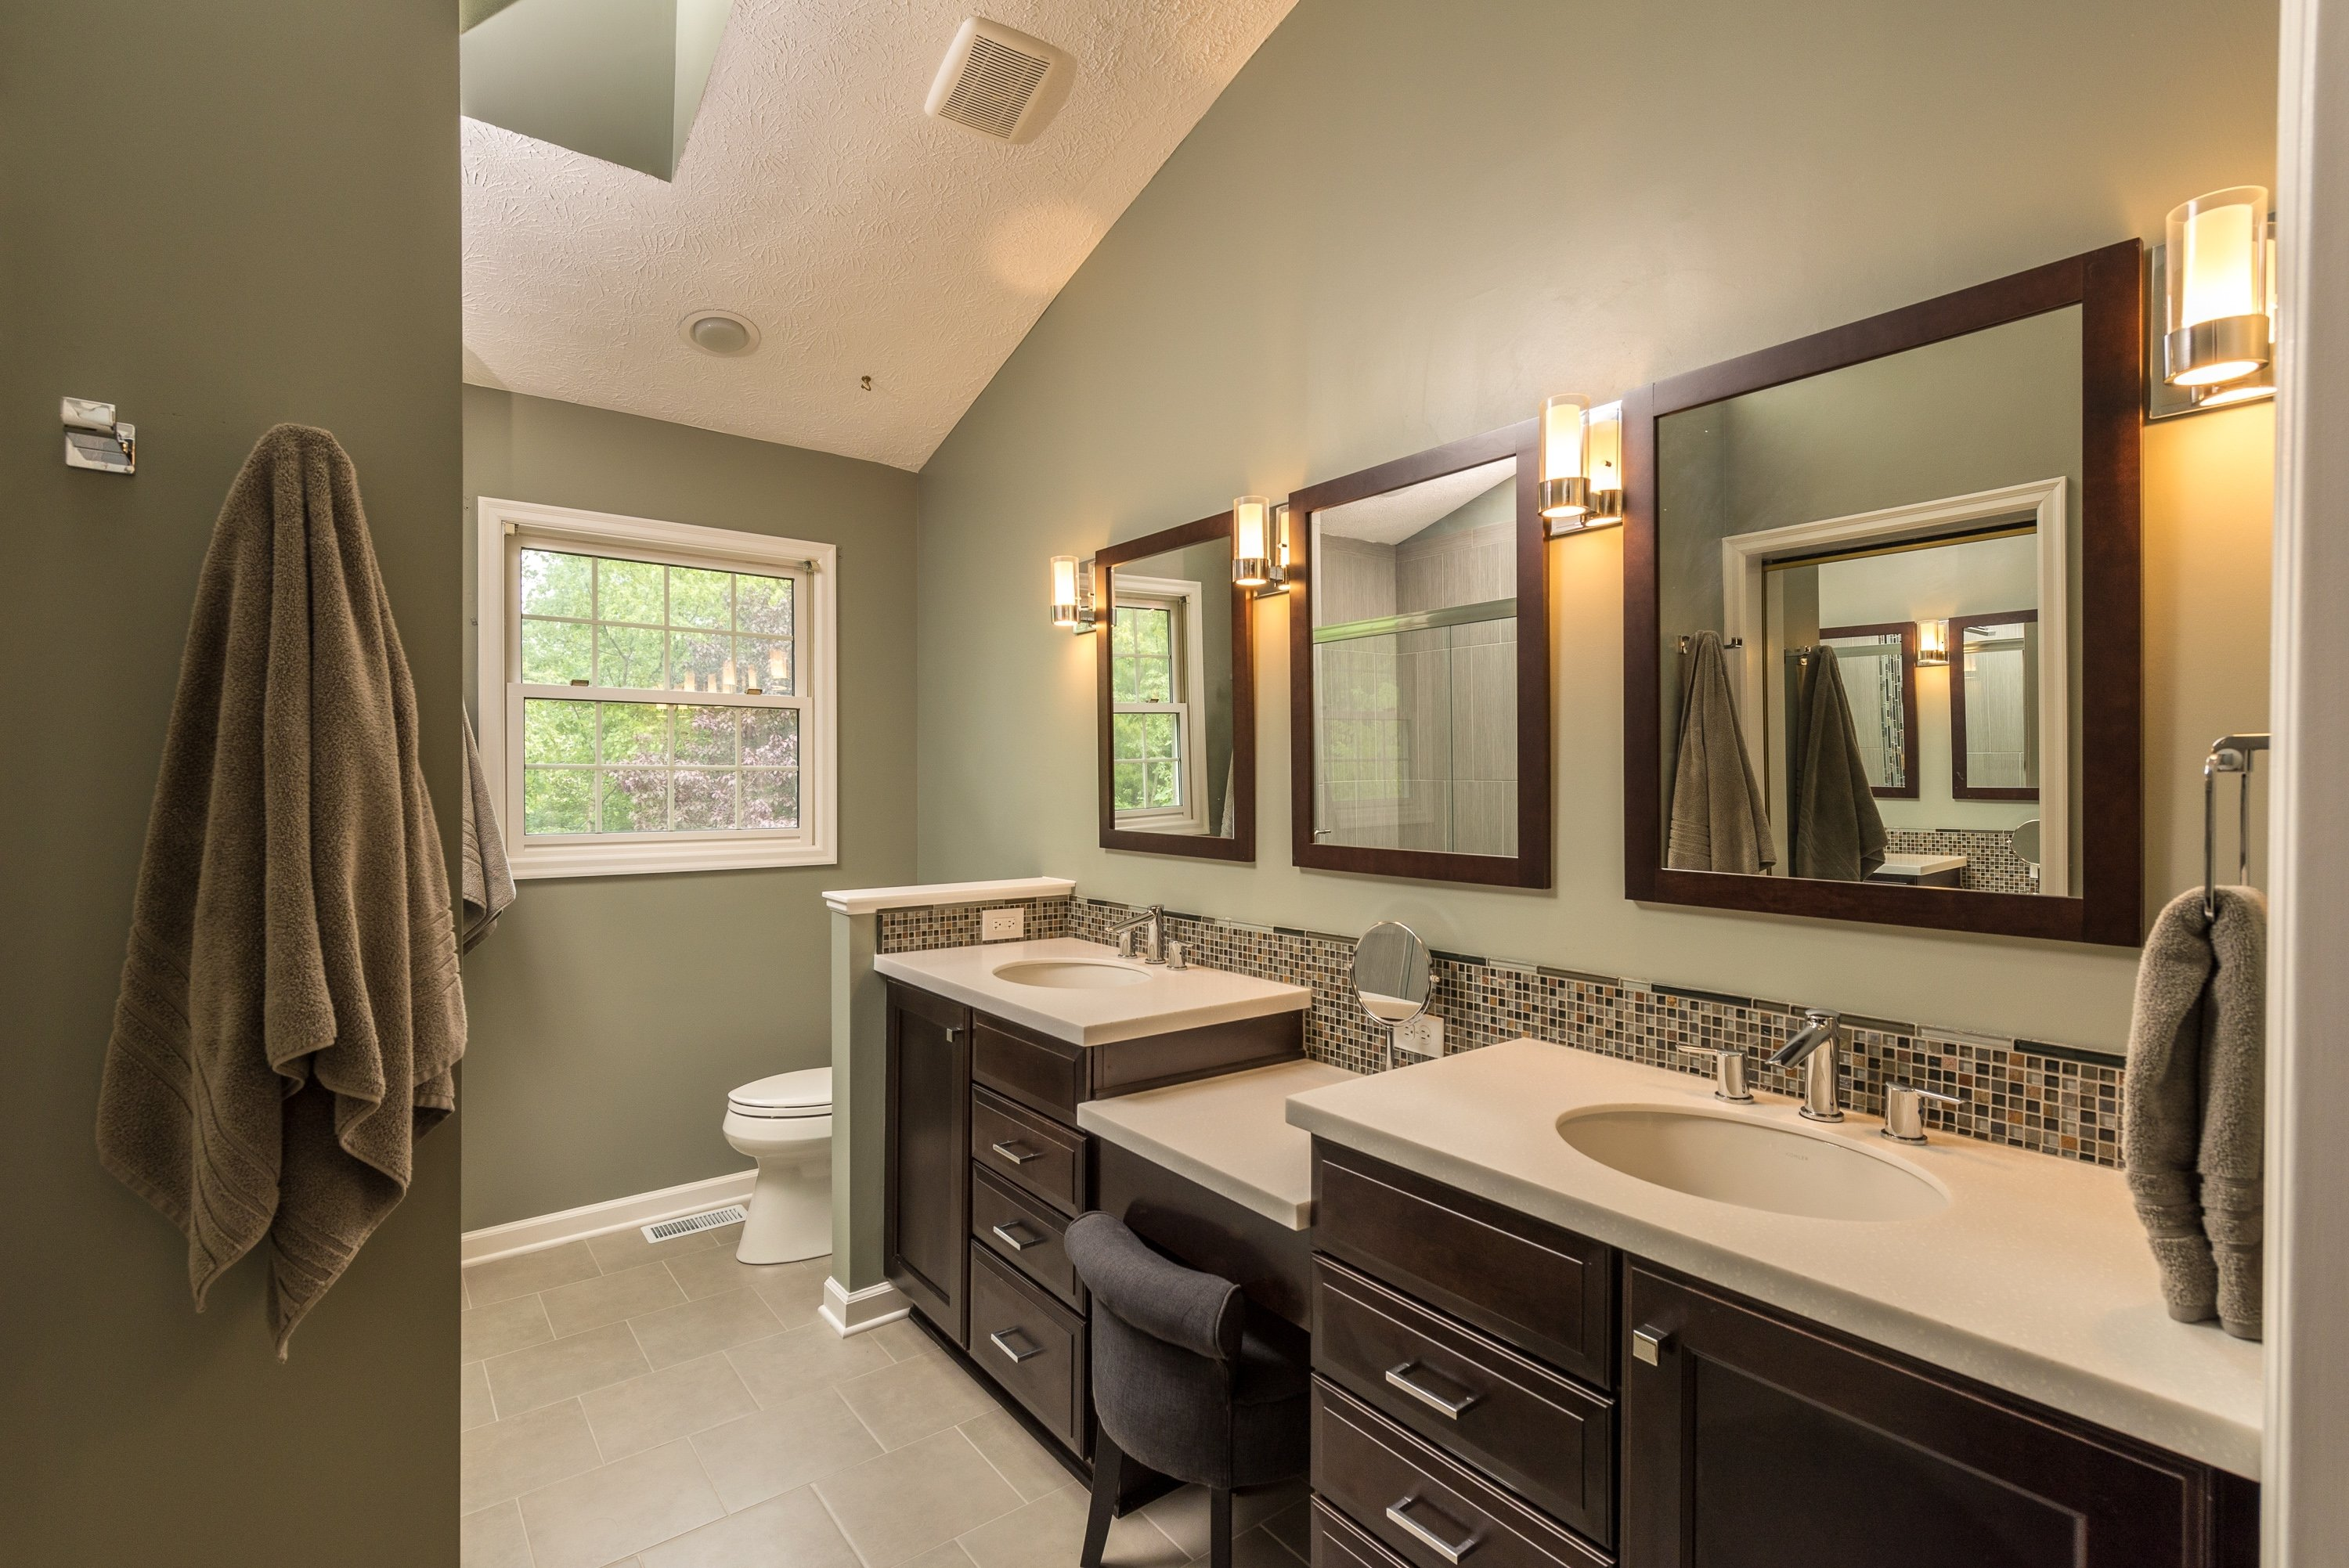 10 Most Recommended Master Bathroom Ideas Photo Gallery master bathroom ideas 2016 remodeling and renovations 2020